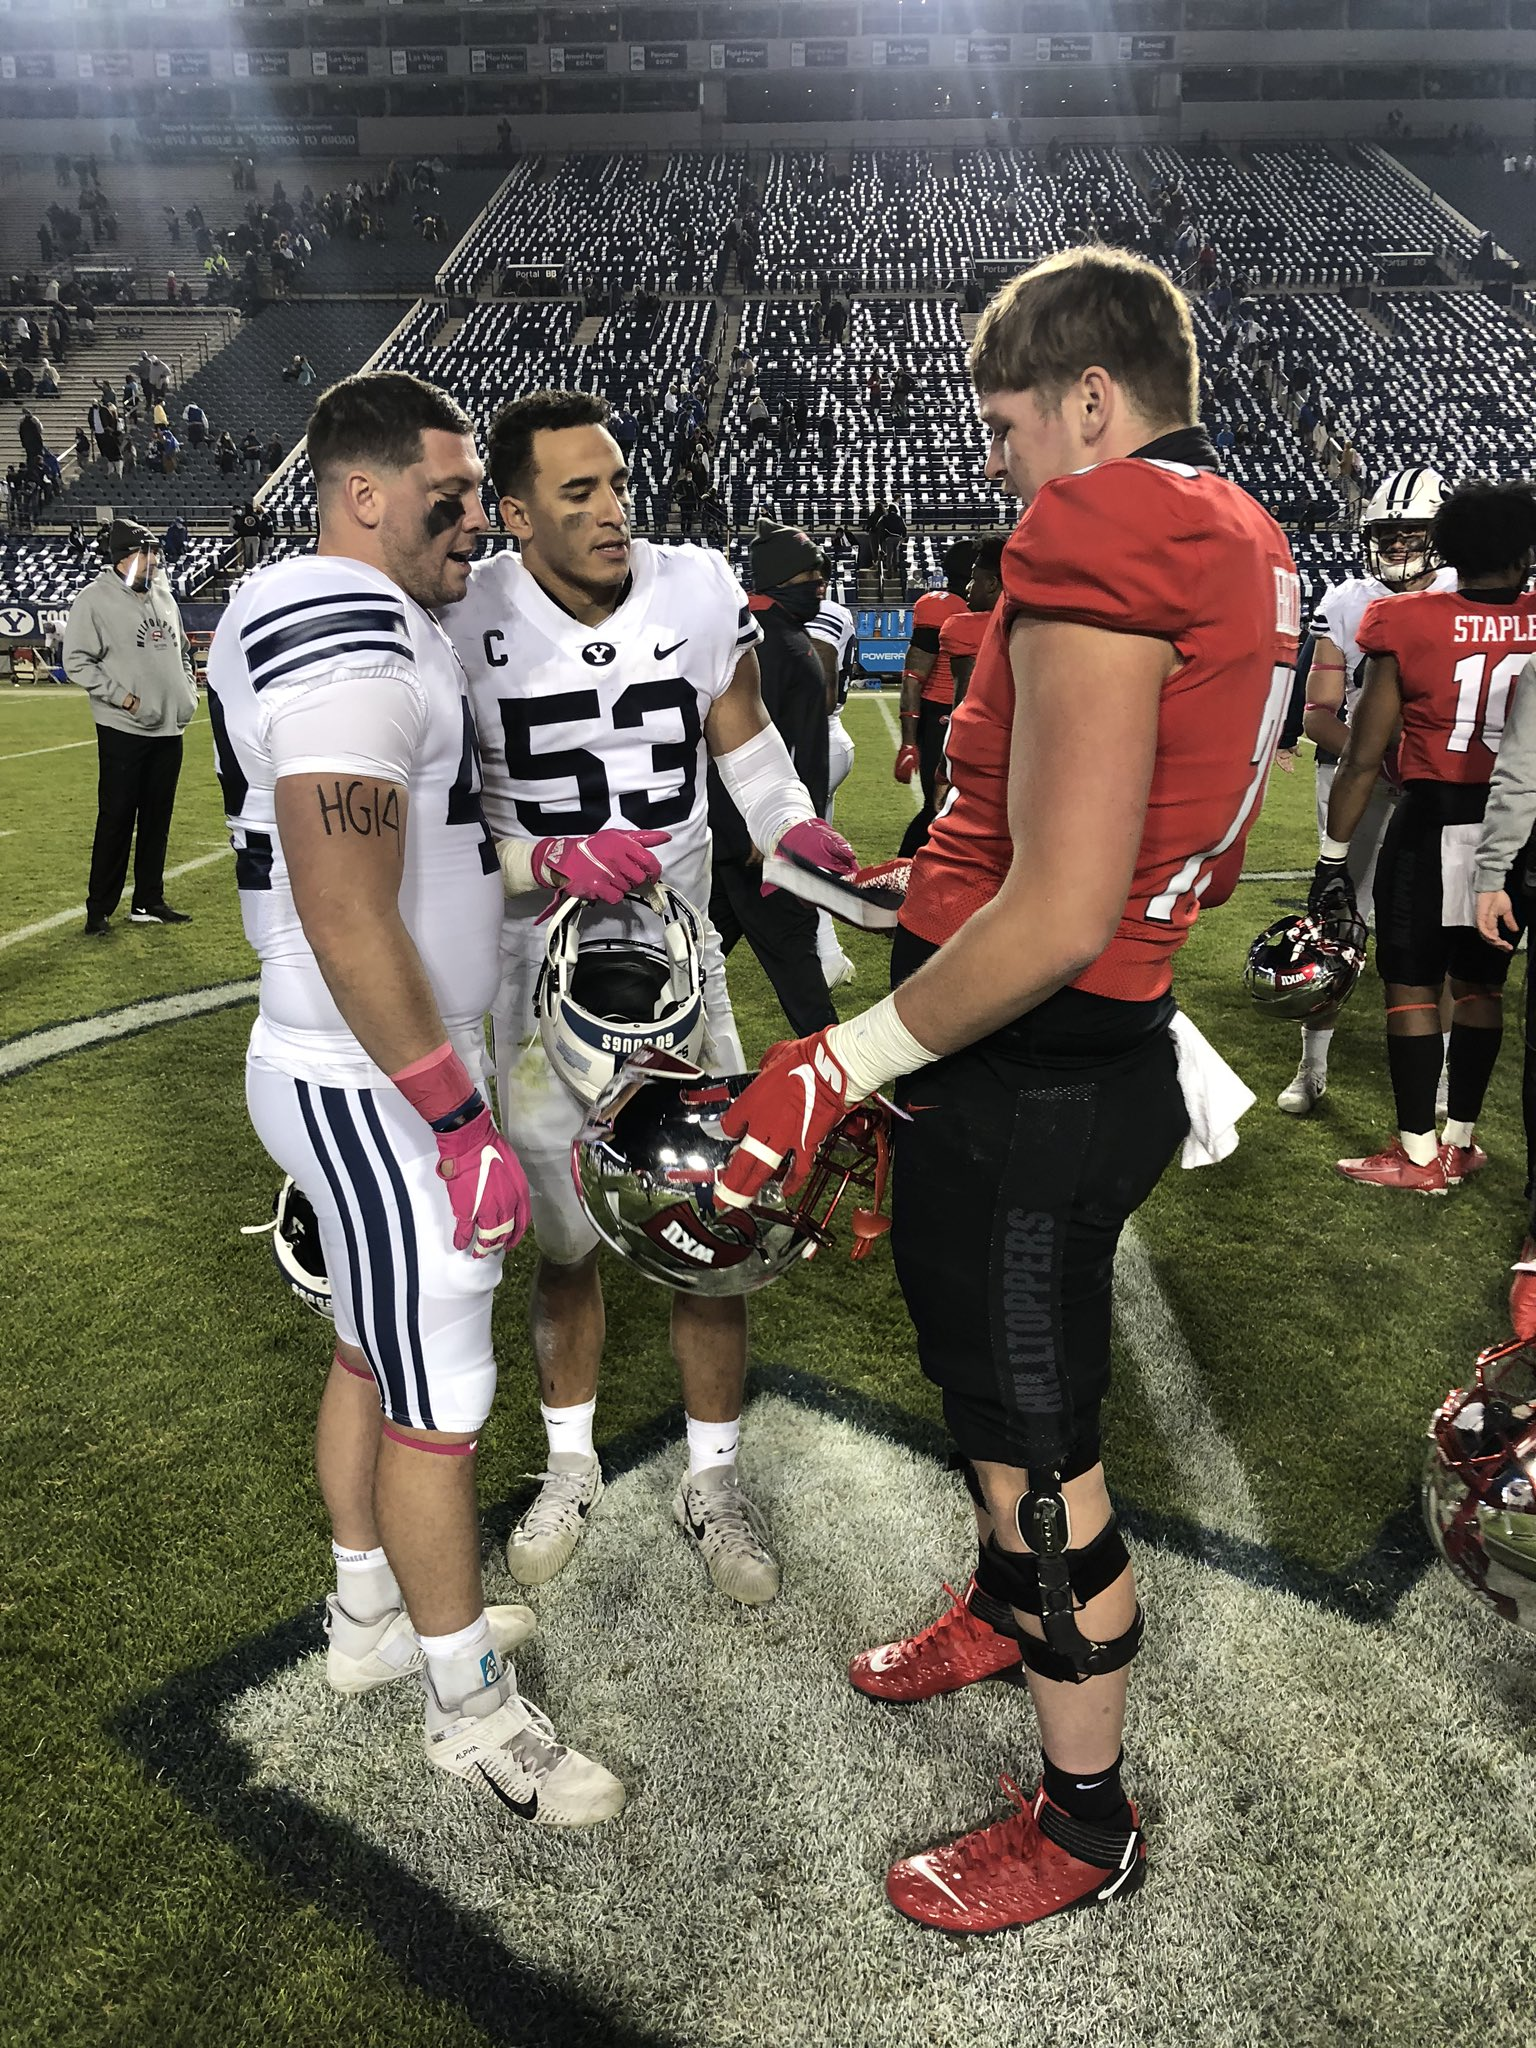 Every Linebacker a Missionary – Iconic Photo of Book of Mormon Exchange After BYU Football Game